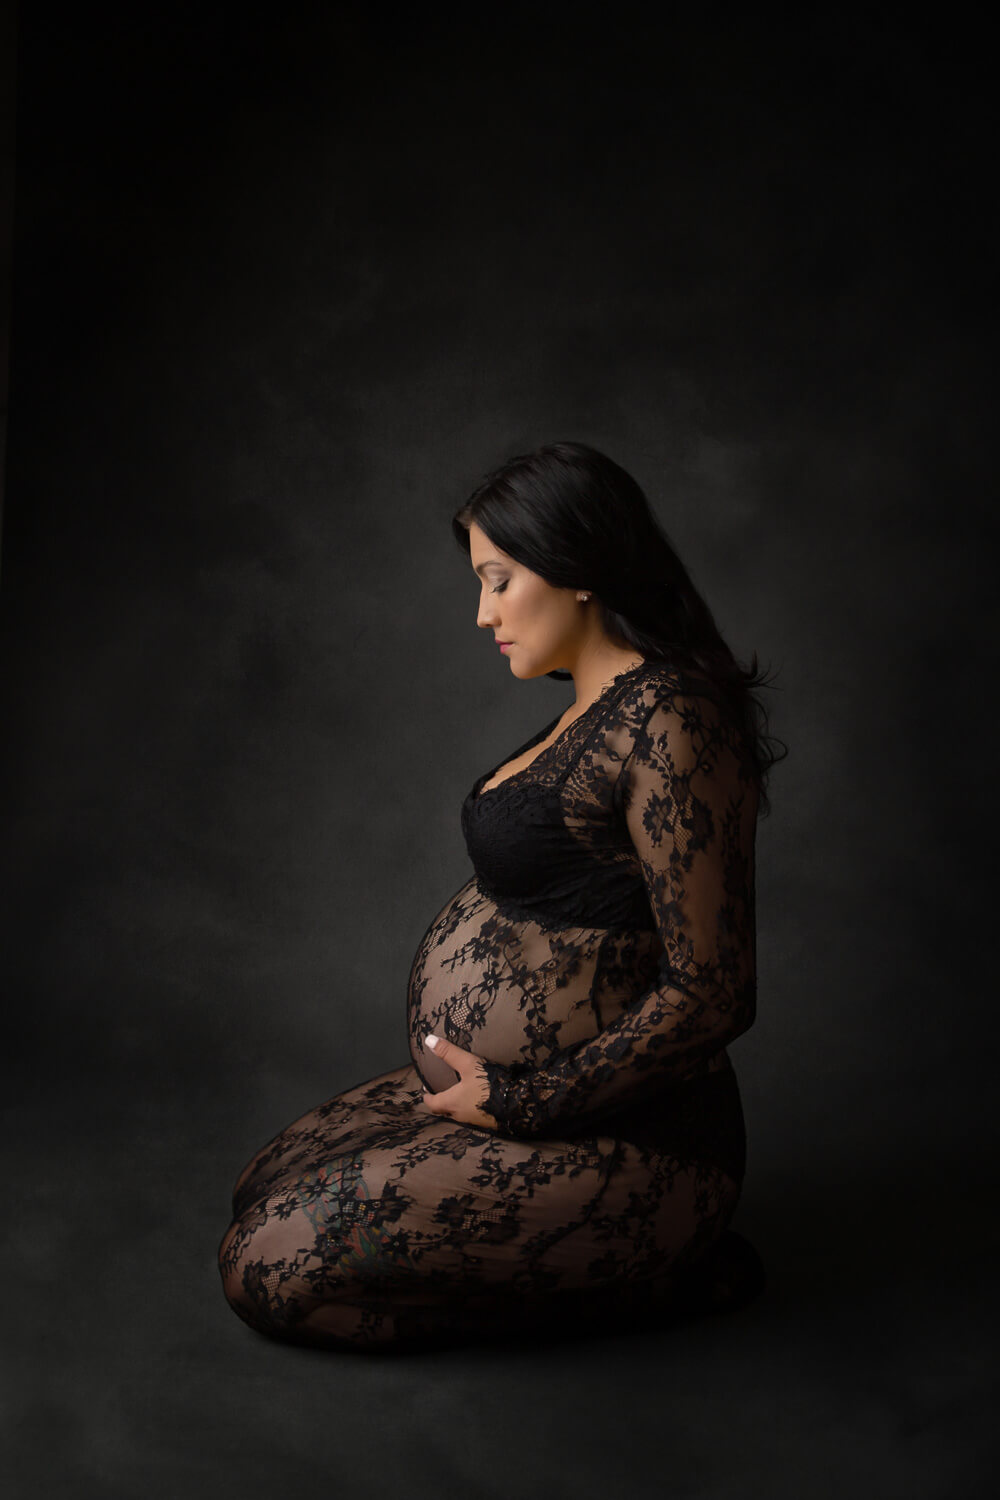 pregnant woman posing for maternity photo in black lace gown kneeling